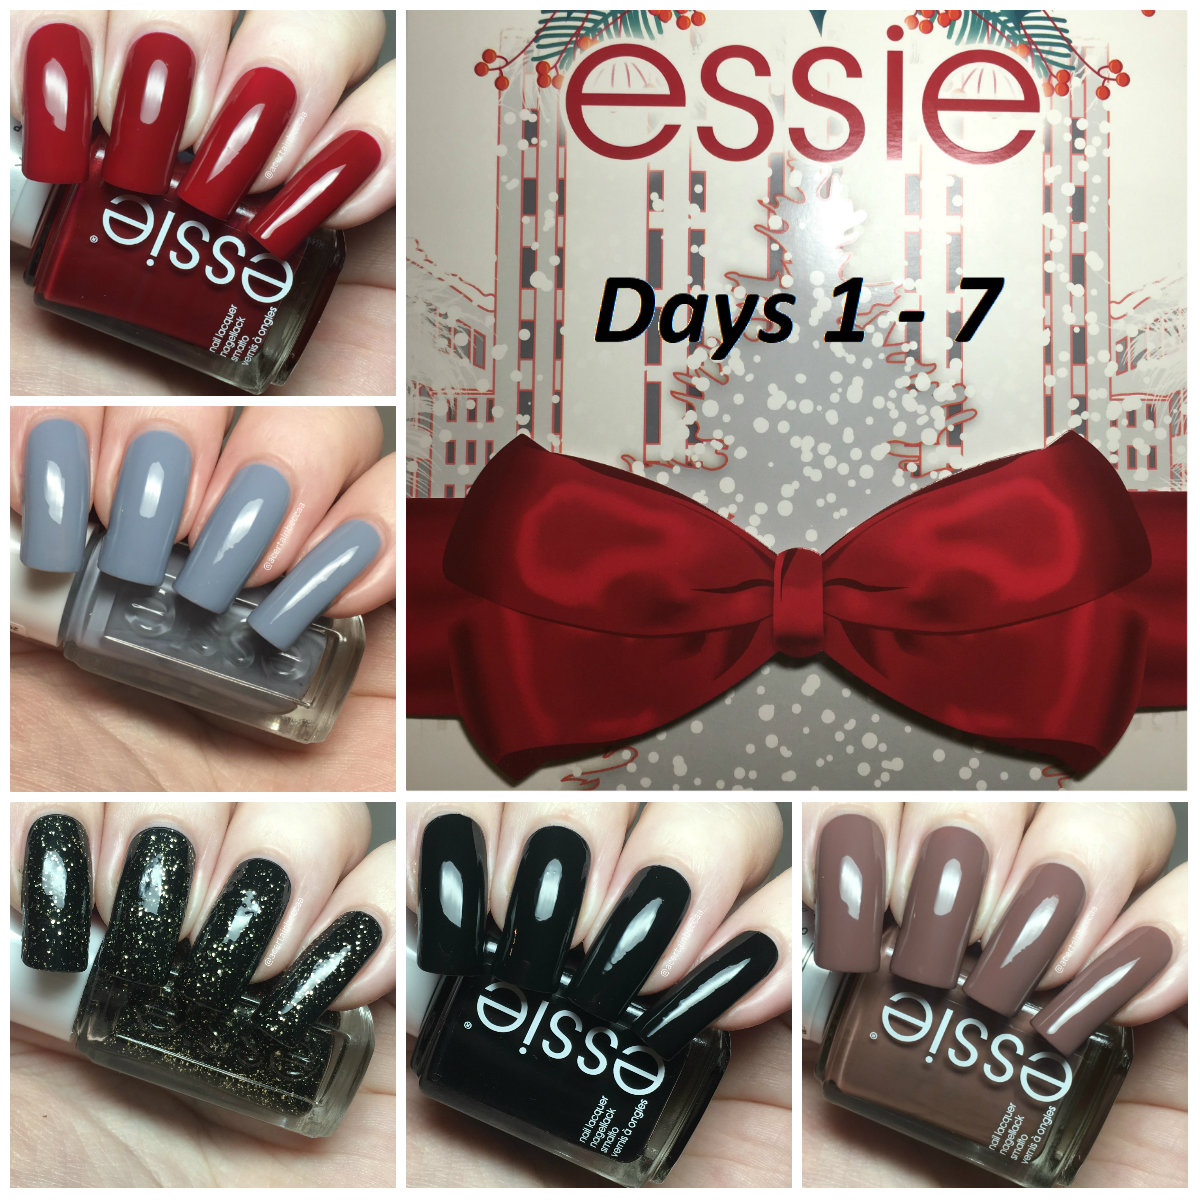 A Certain Becca Nails: Essie Advent Calendar 2017 - Days 1-7